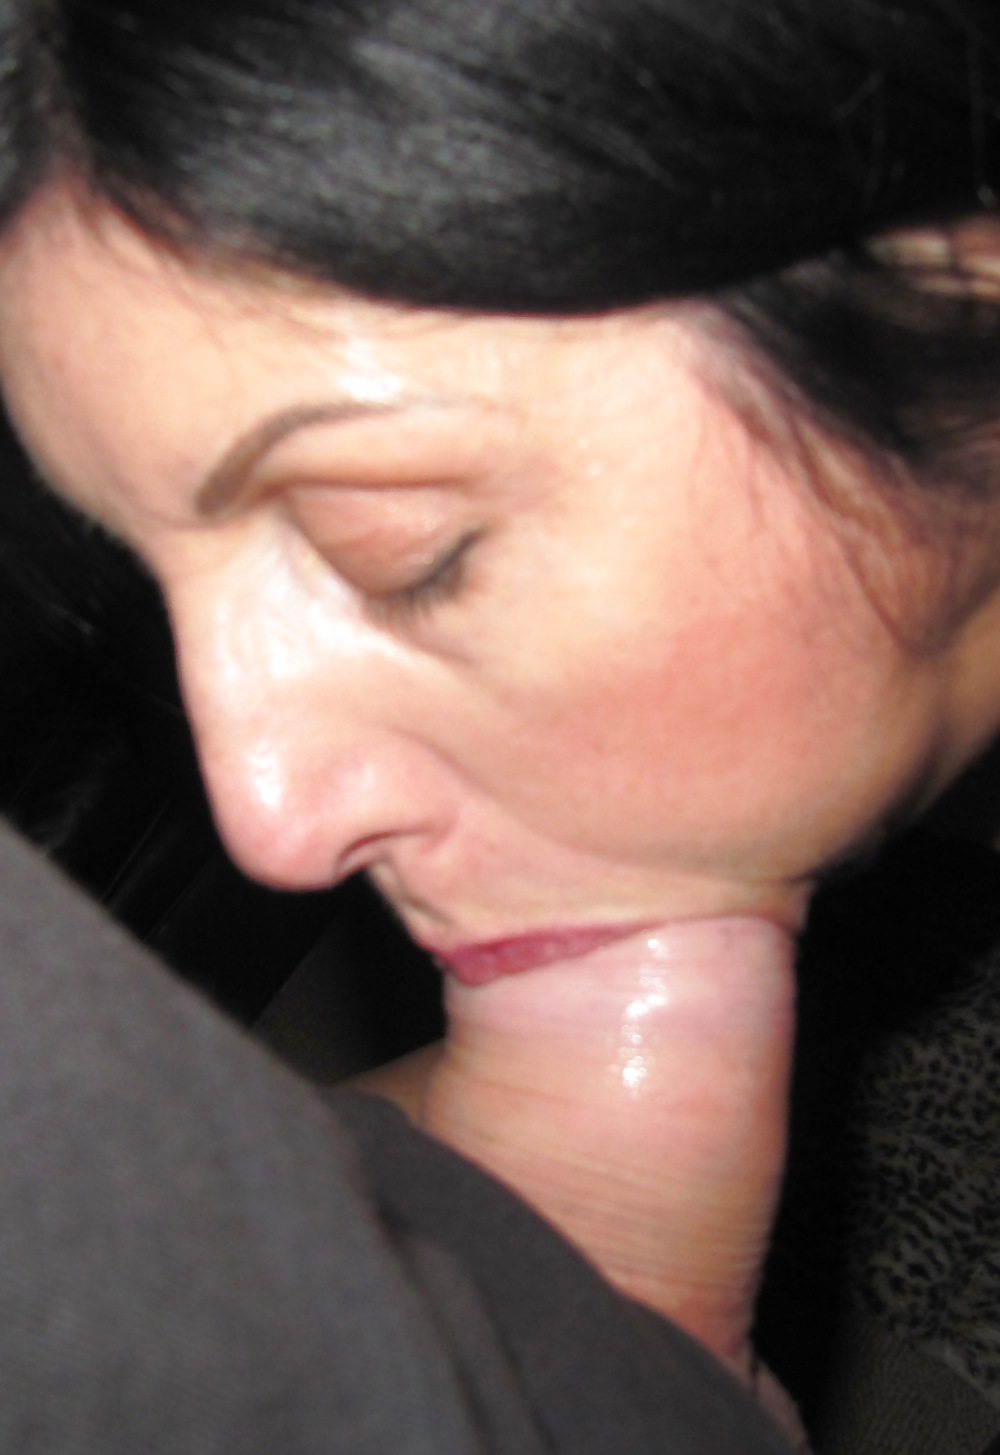 mom cock My loves to suck